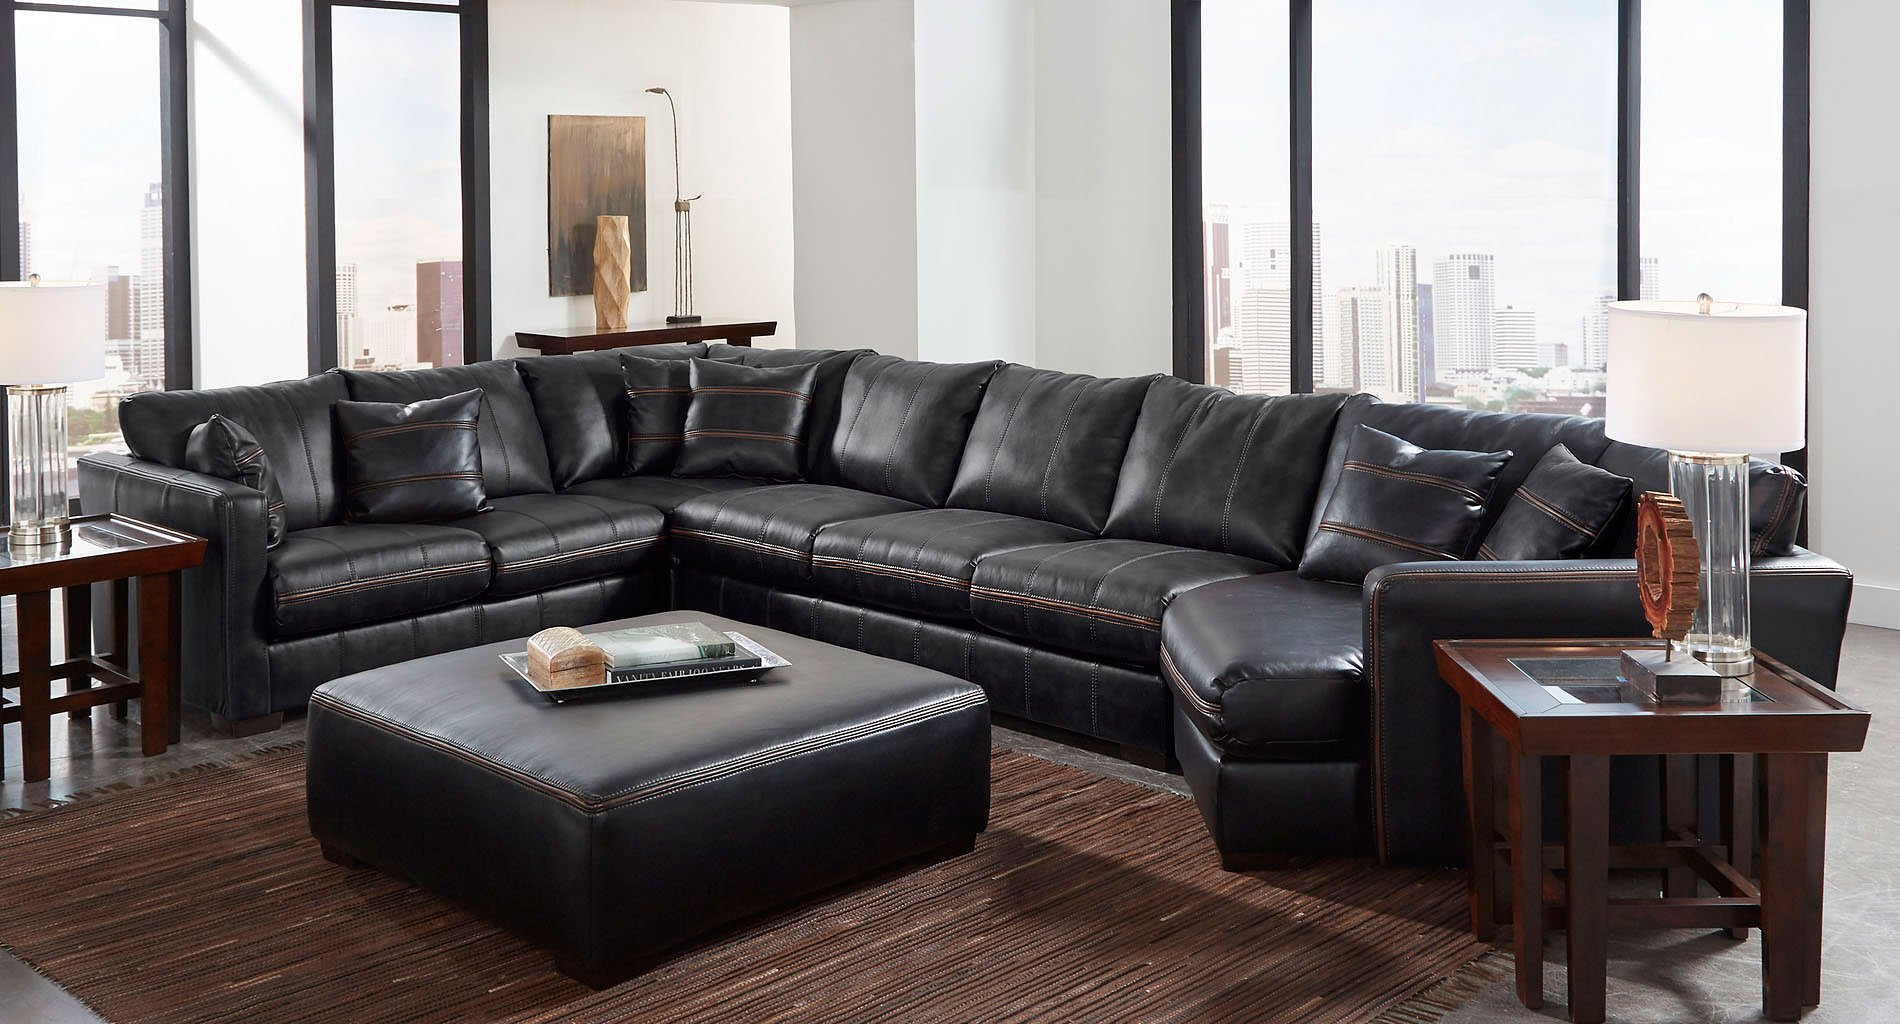 Tucker Modular Sectional w Piano Wedge Black  Sectionals  Living Room Furniture  Living Room